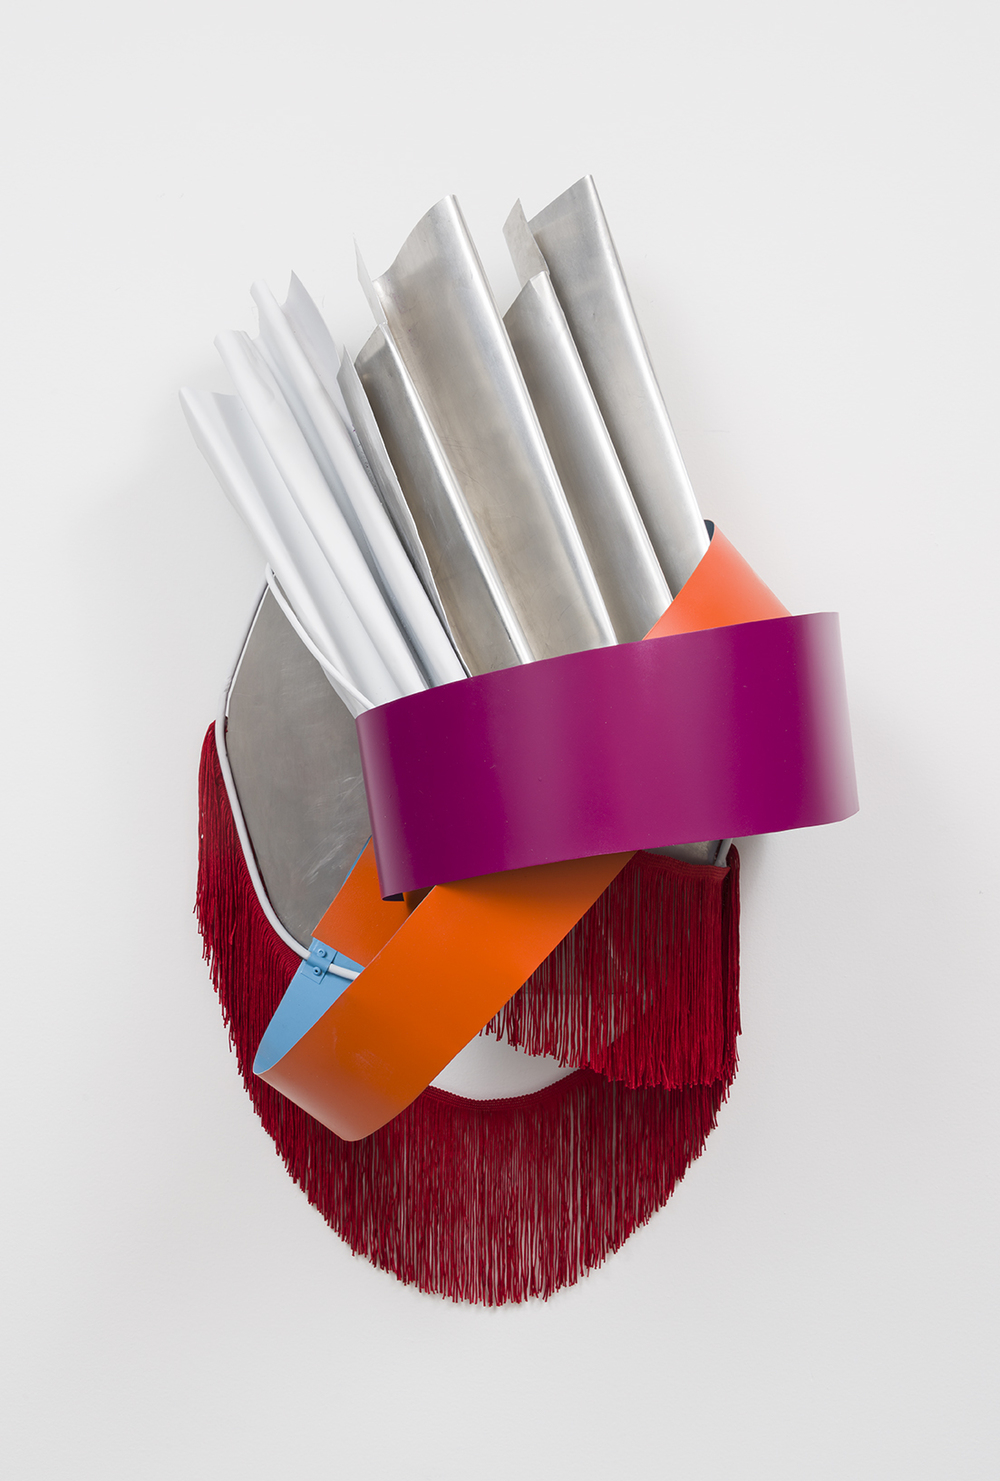 Nora Shields - Untitled (Metal Relief) - 2016 - Acrylic, Stainless Steel, Fringe, Aluminum - 34 x 16 x 12""